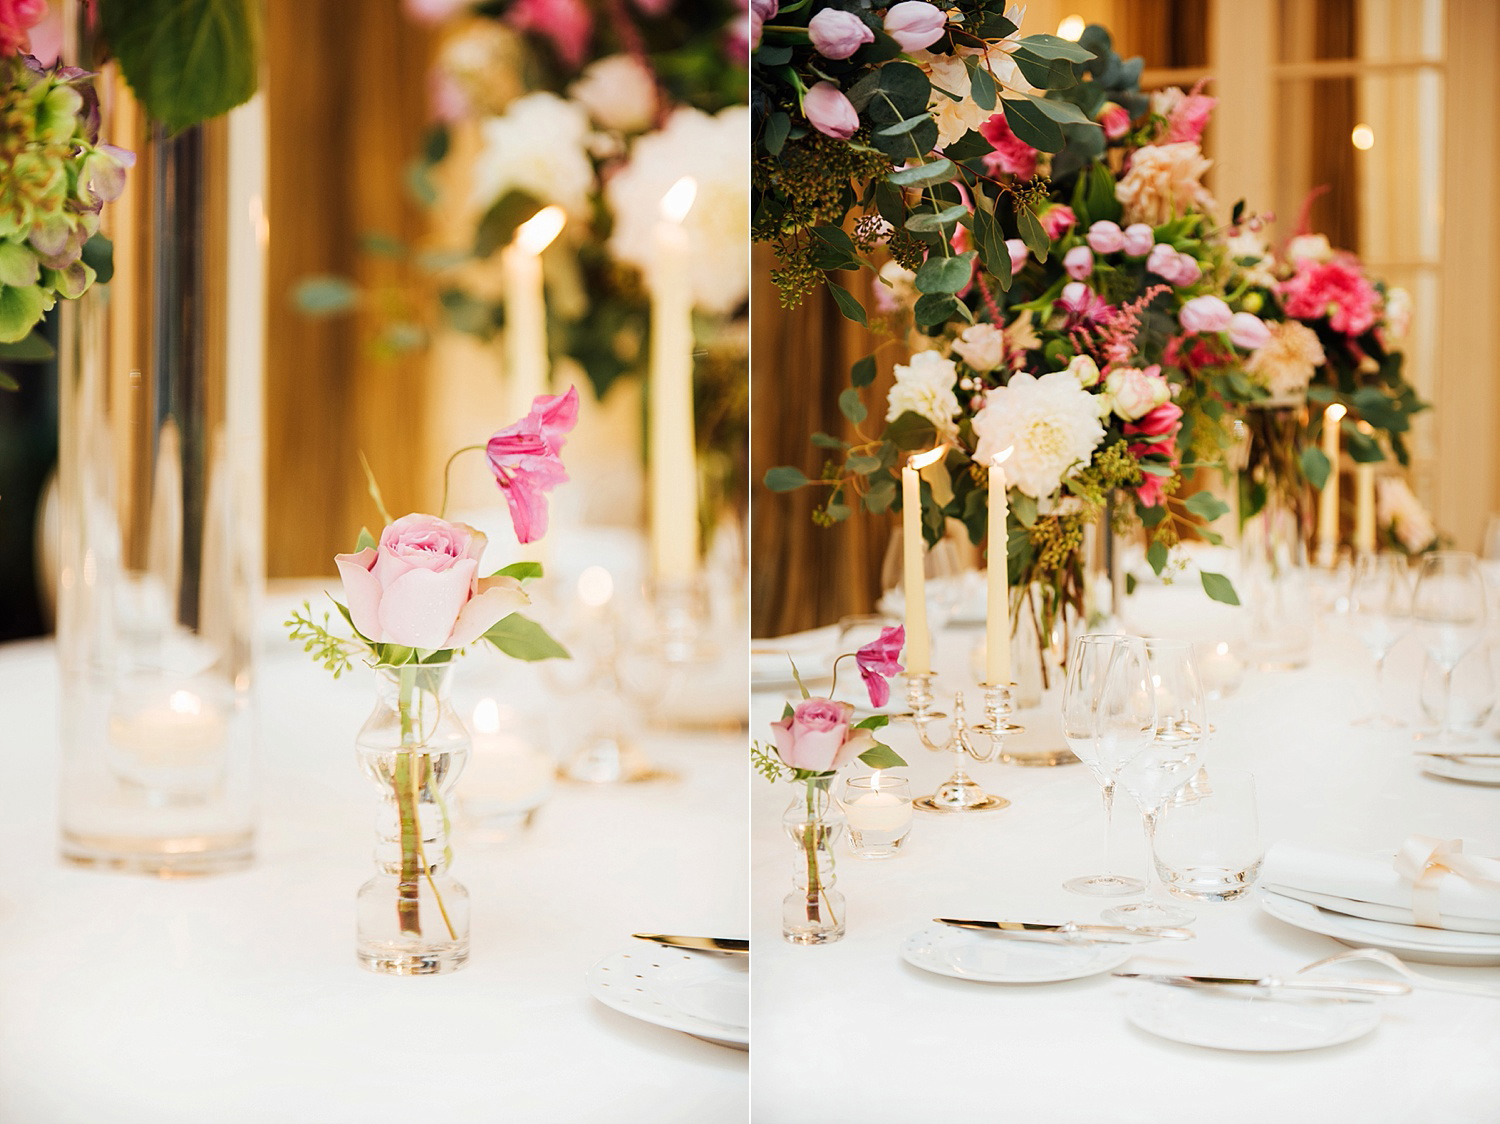 Katie_Mitchell_Photography_Plaza_Anthenee_Paris_Styled_Shoot_23.jpg